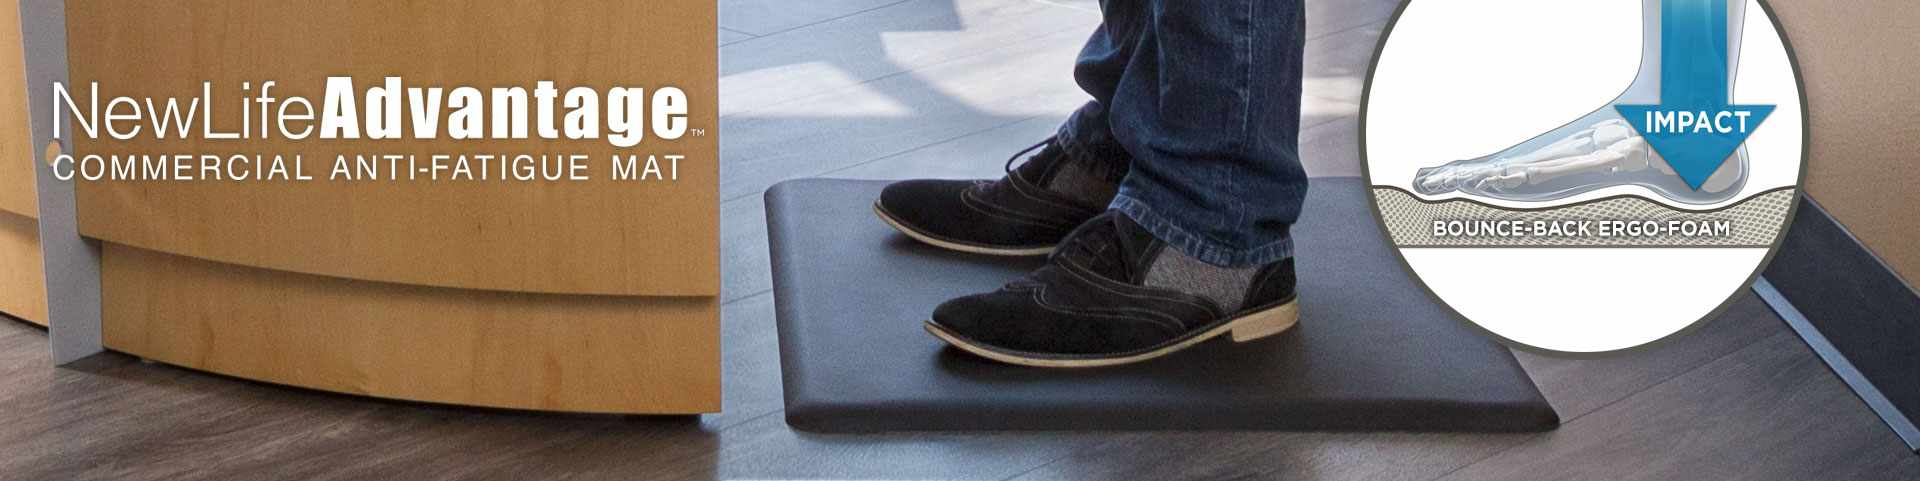 Proudly Made In The Usa Eco Friendly Newlife Advantage Anti Fatigue Floor Mat Offers A Superior Comfort Solution To Employees Who Stand At Work